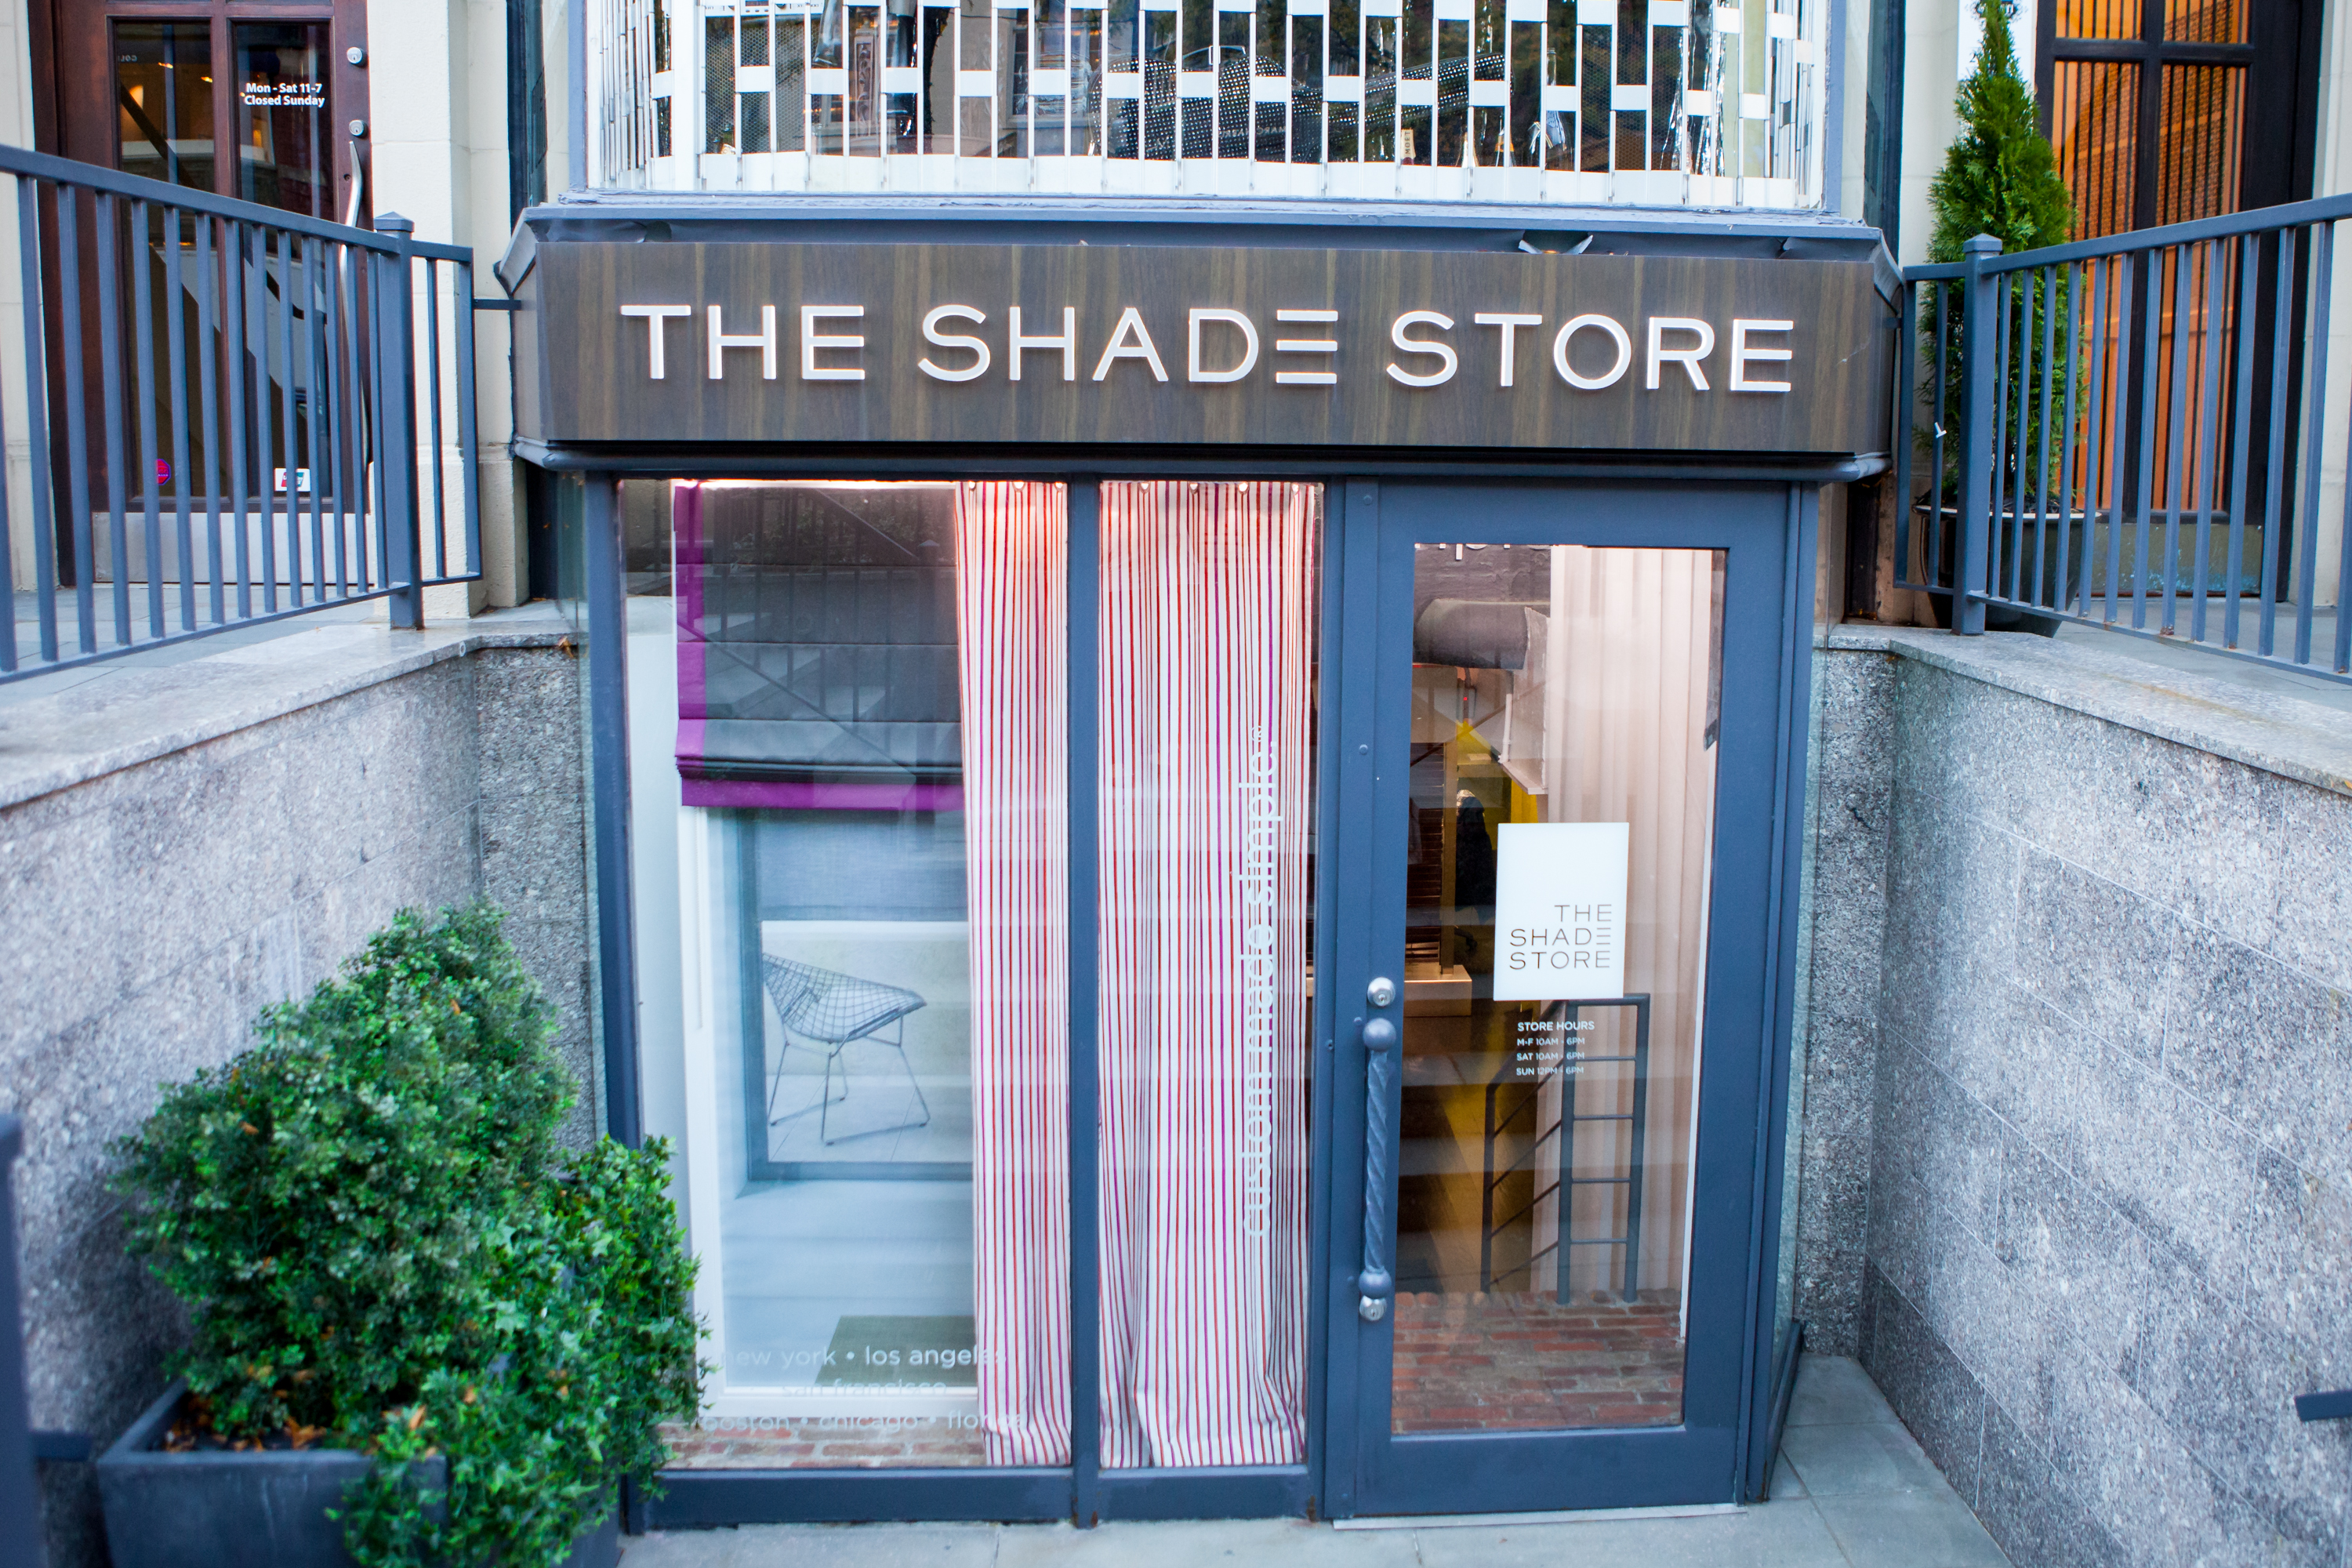 The storefront of The Shade Store in Boston